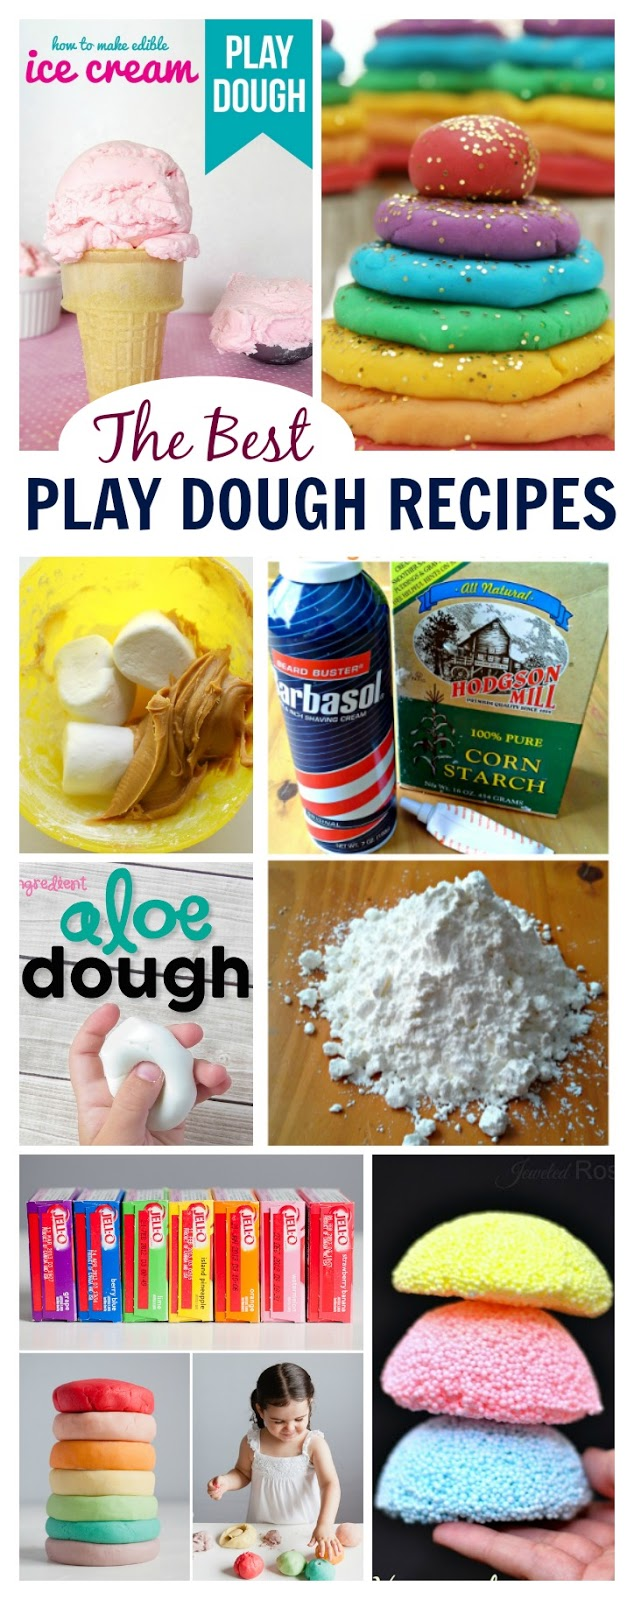 Amazing play dough recipes for kids